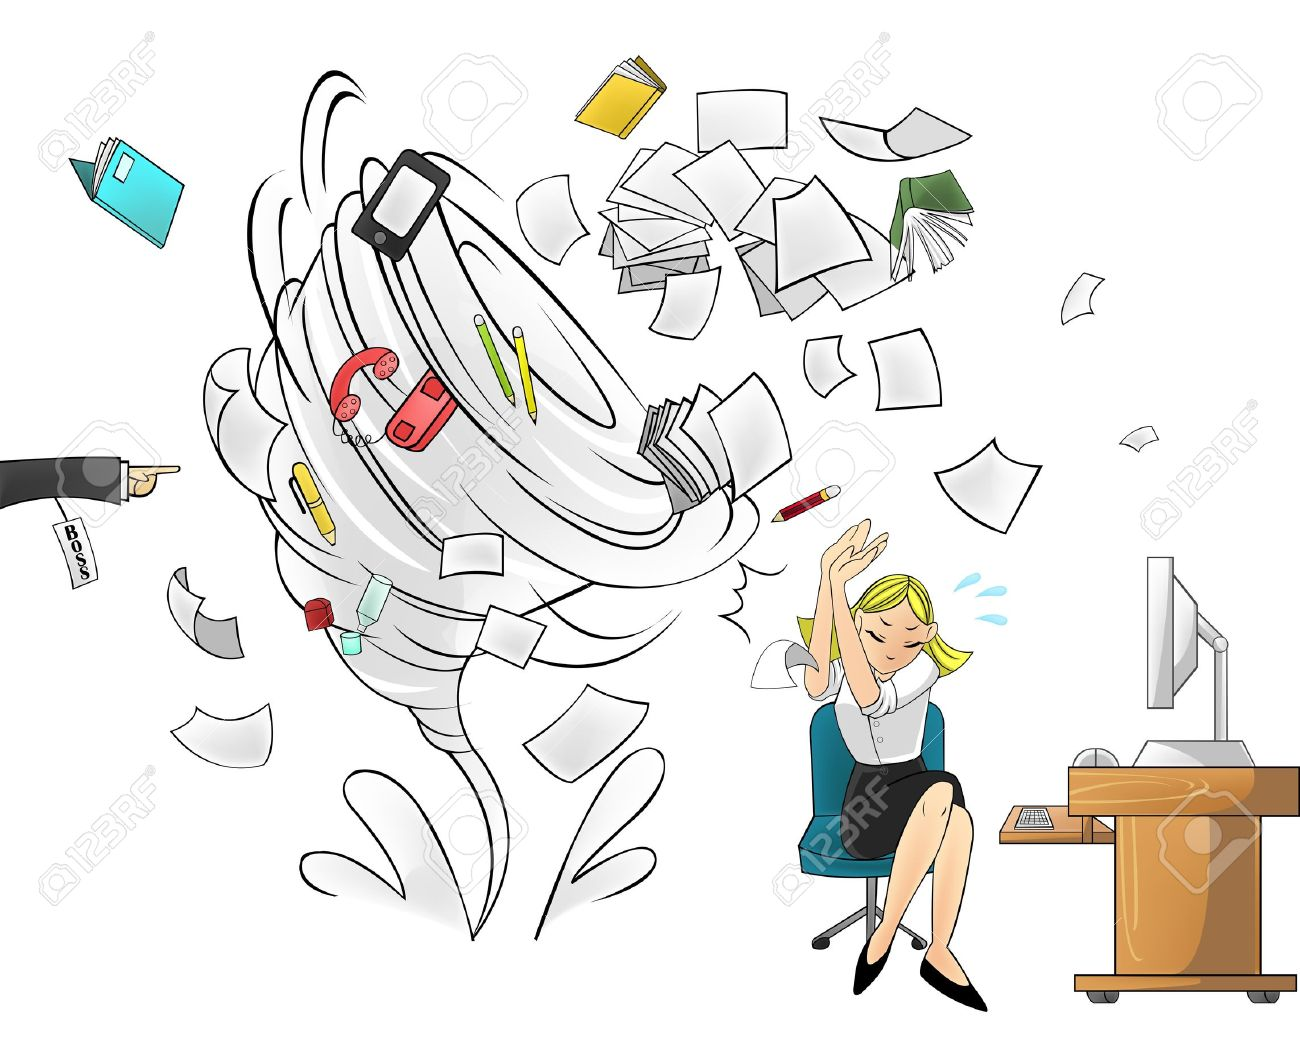 Image result for workaholic lady cartoon